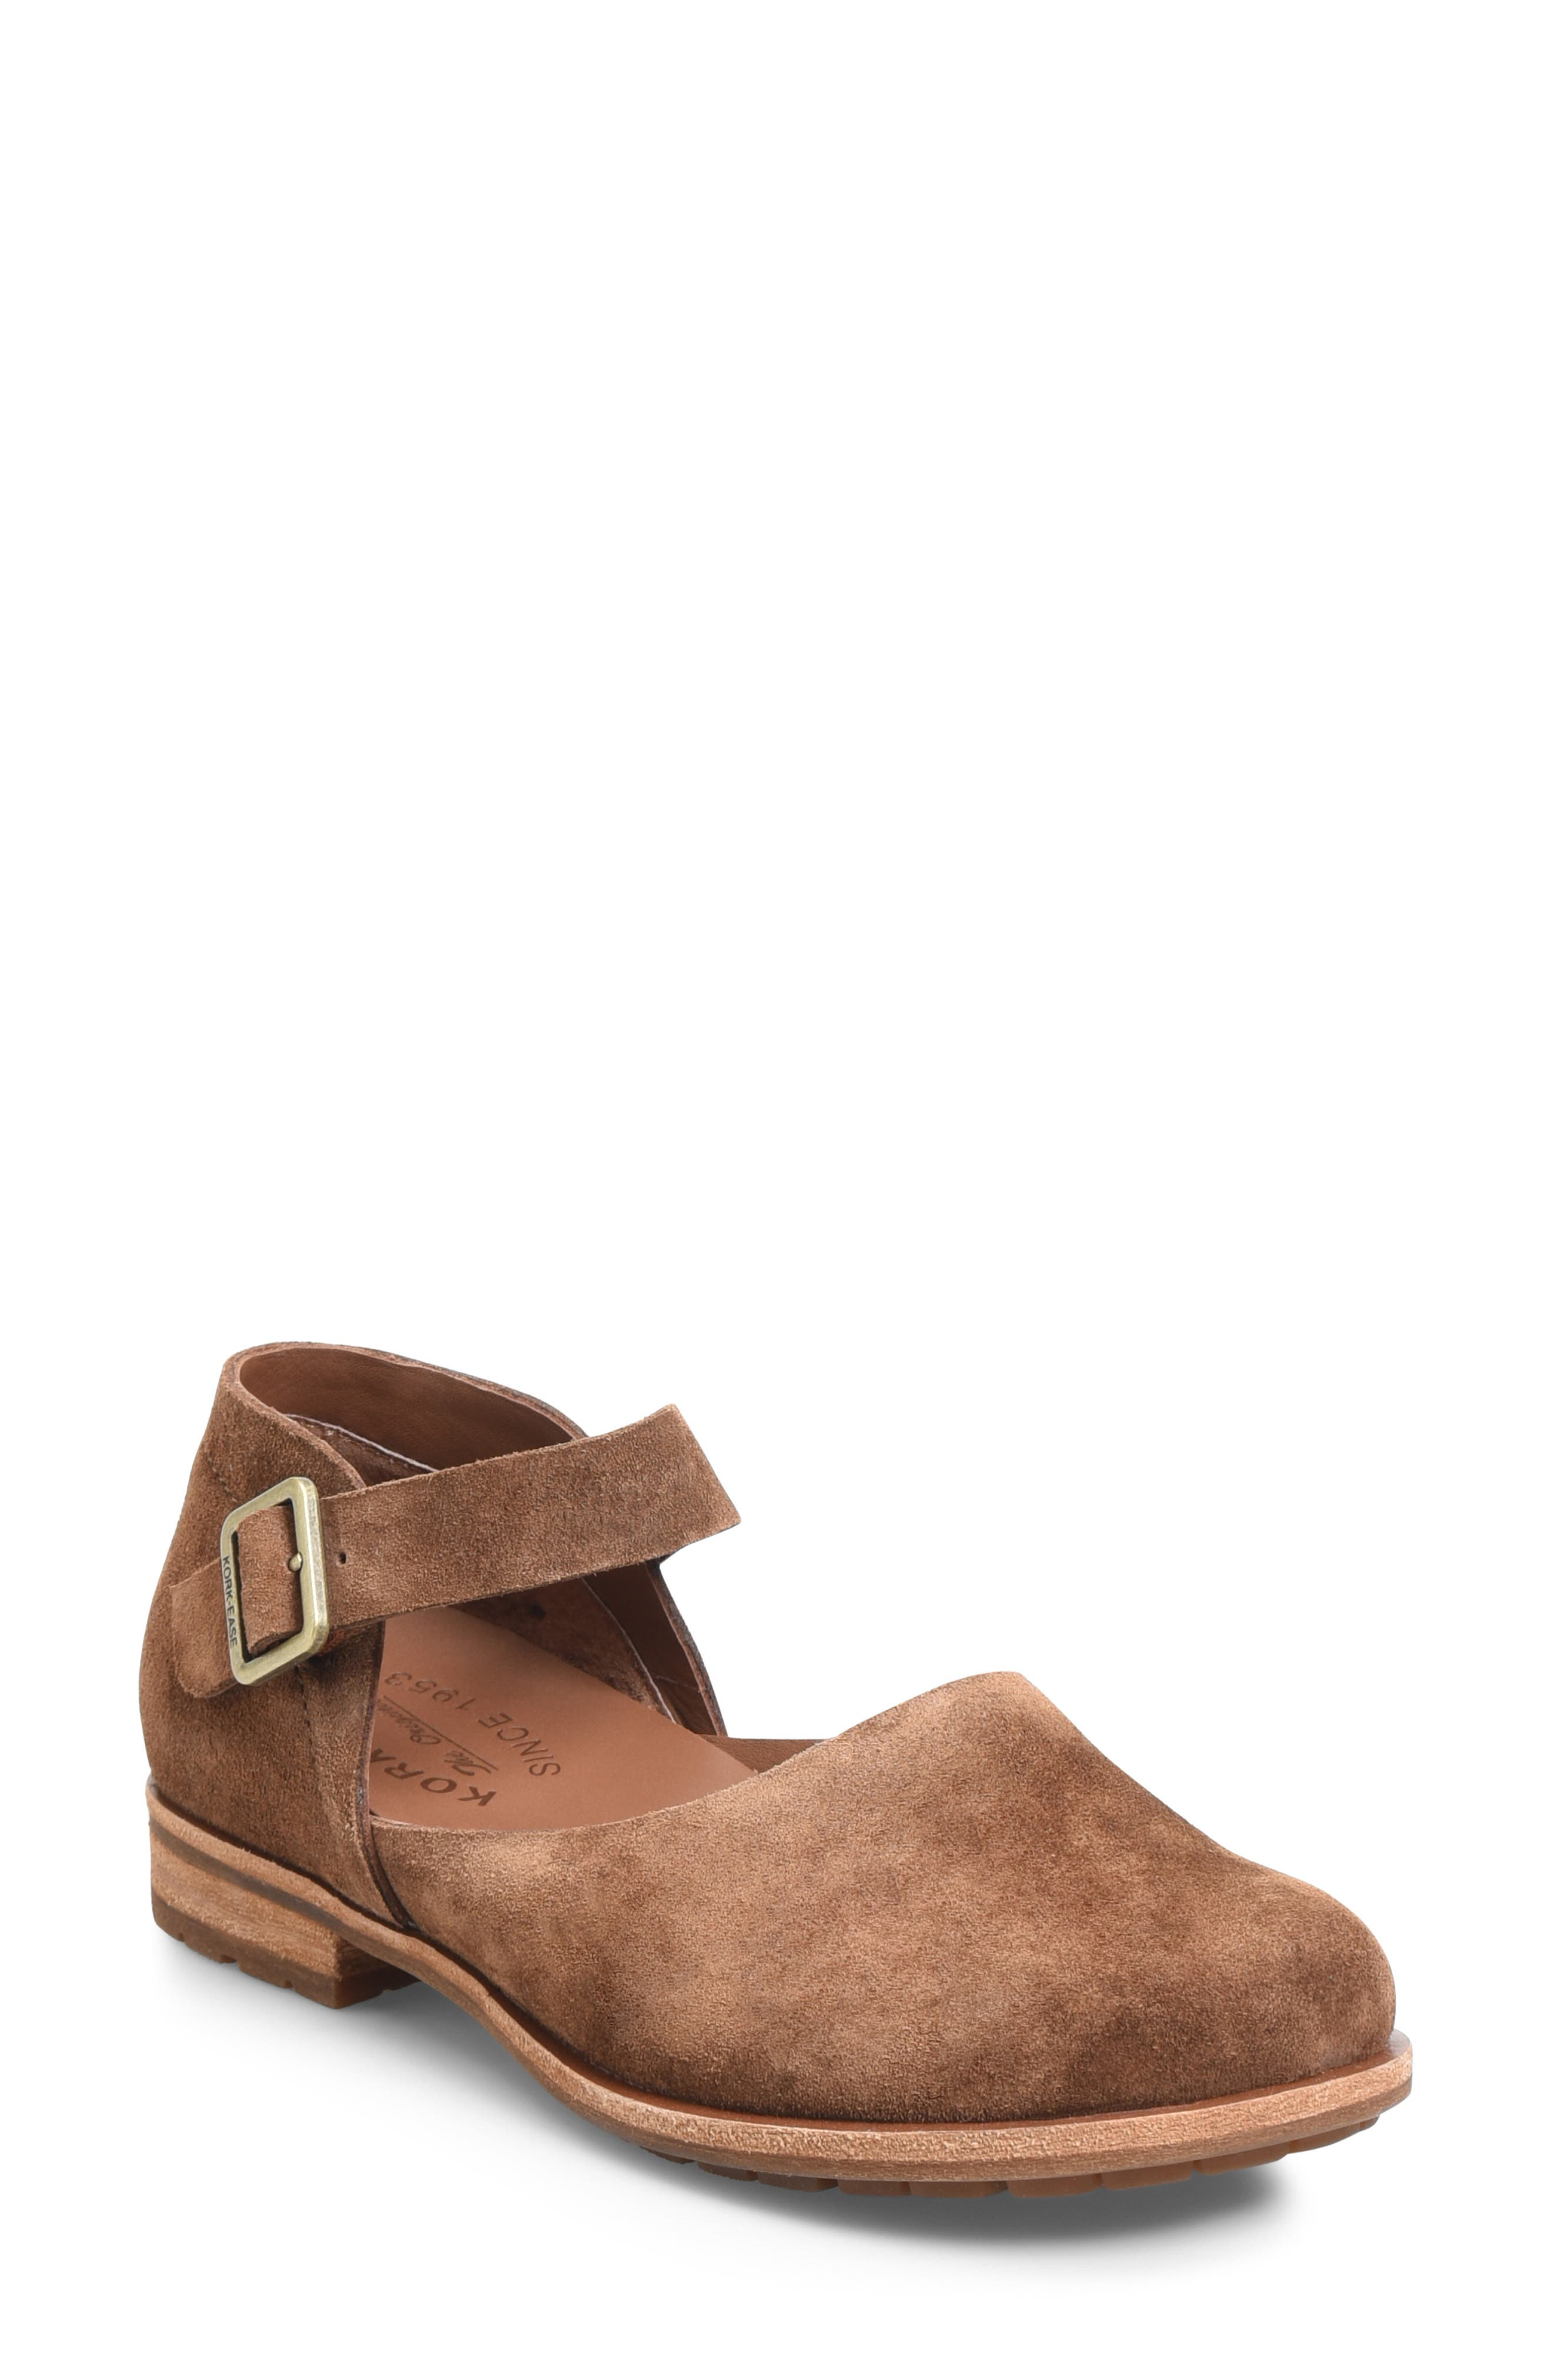 KORK-EASE<SUP>®</SUP> Bellota Mary Jane Flat, Main, color, BROWN SUEDE